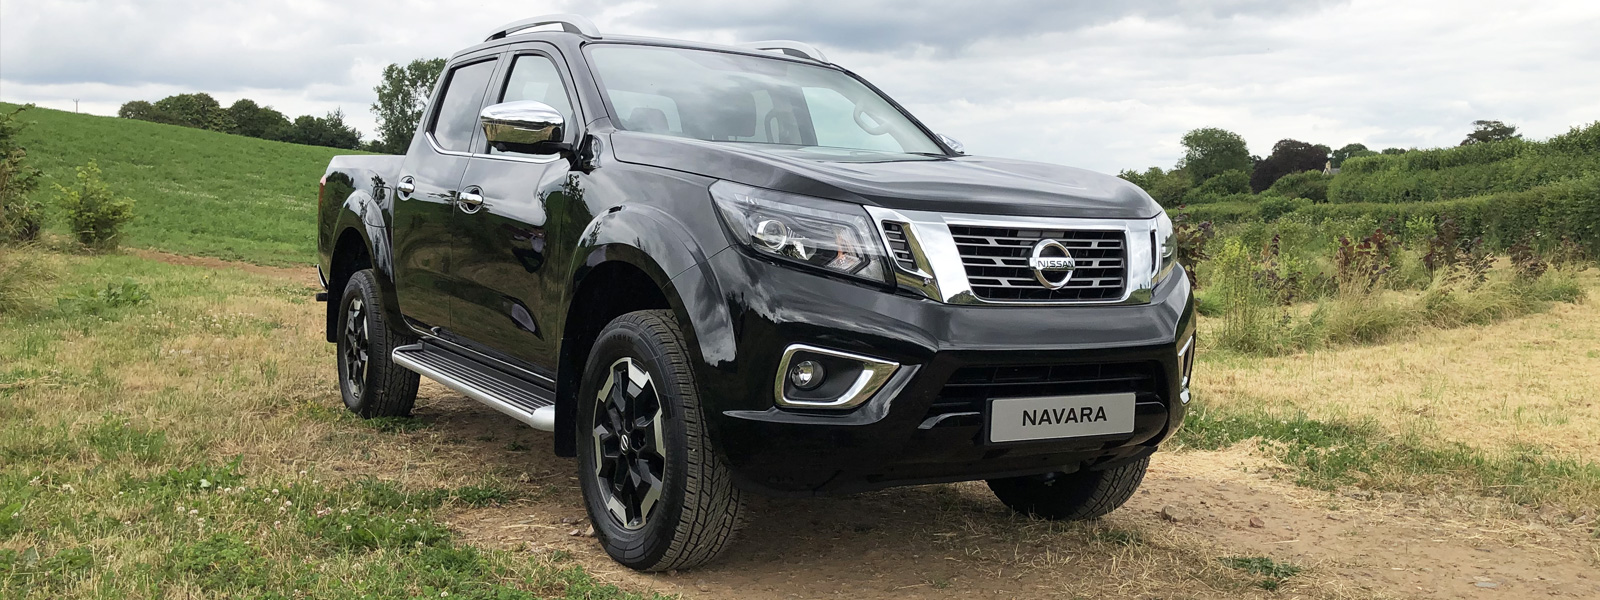 27 Gallery of 2019 Nissan Navara New Concept for 2019 Nissan Navara